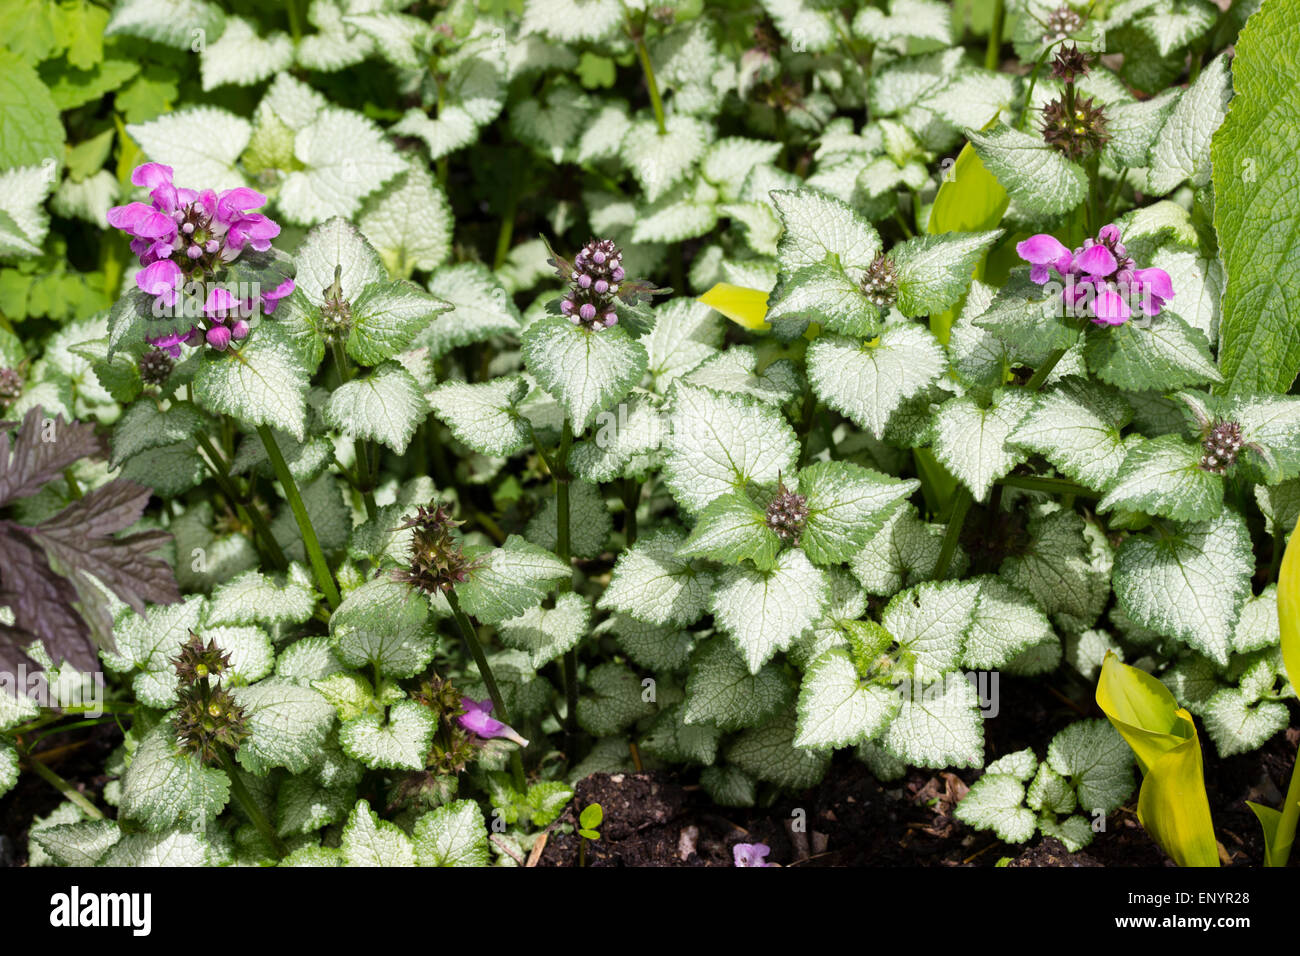 Flowers and silver foliage of the hardy ground cover, Lamium maculatum 'Beacon Silver' - Stock Image